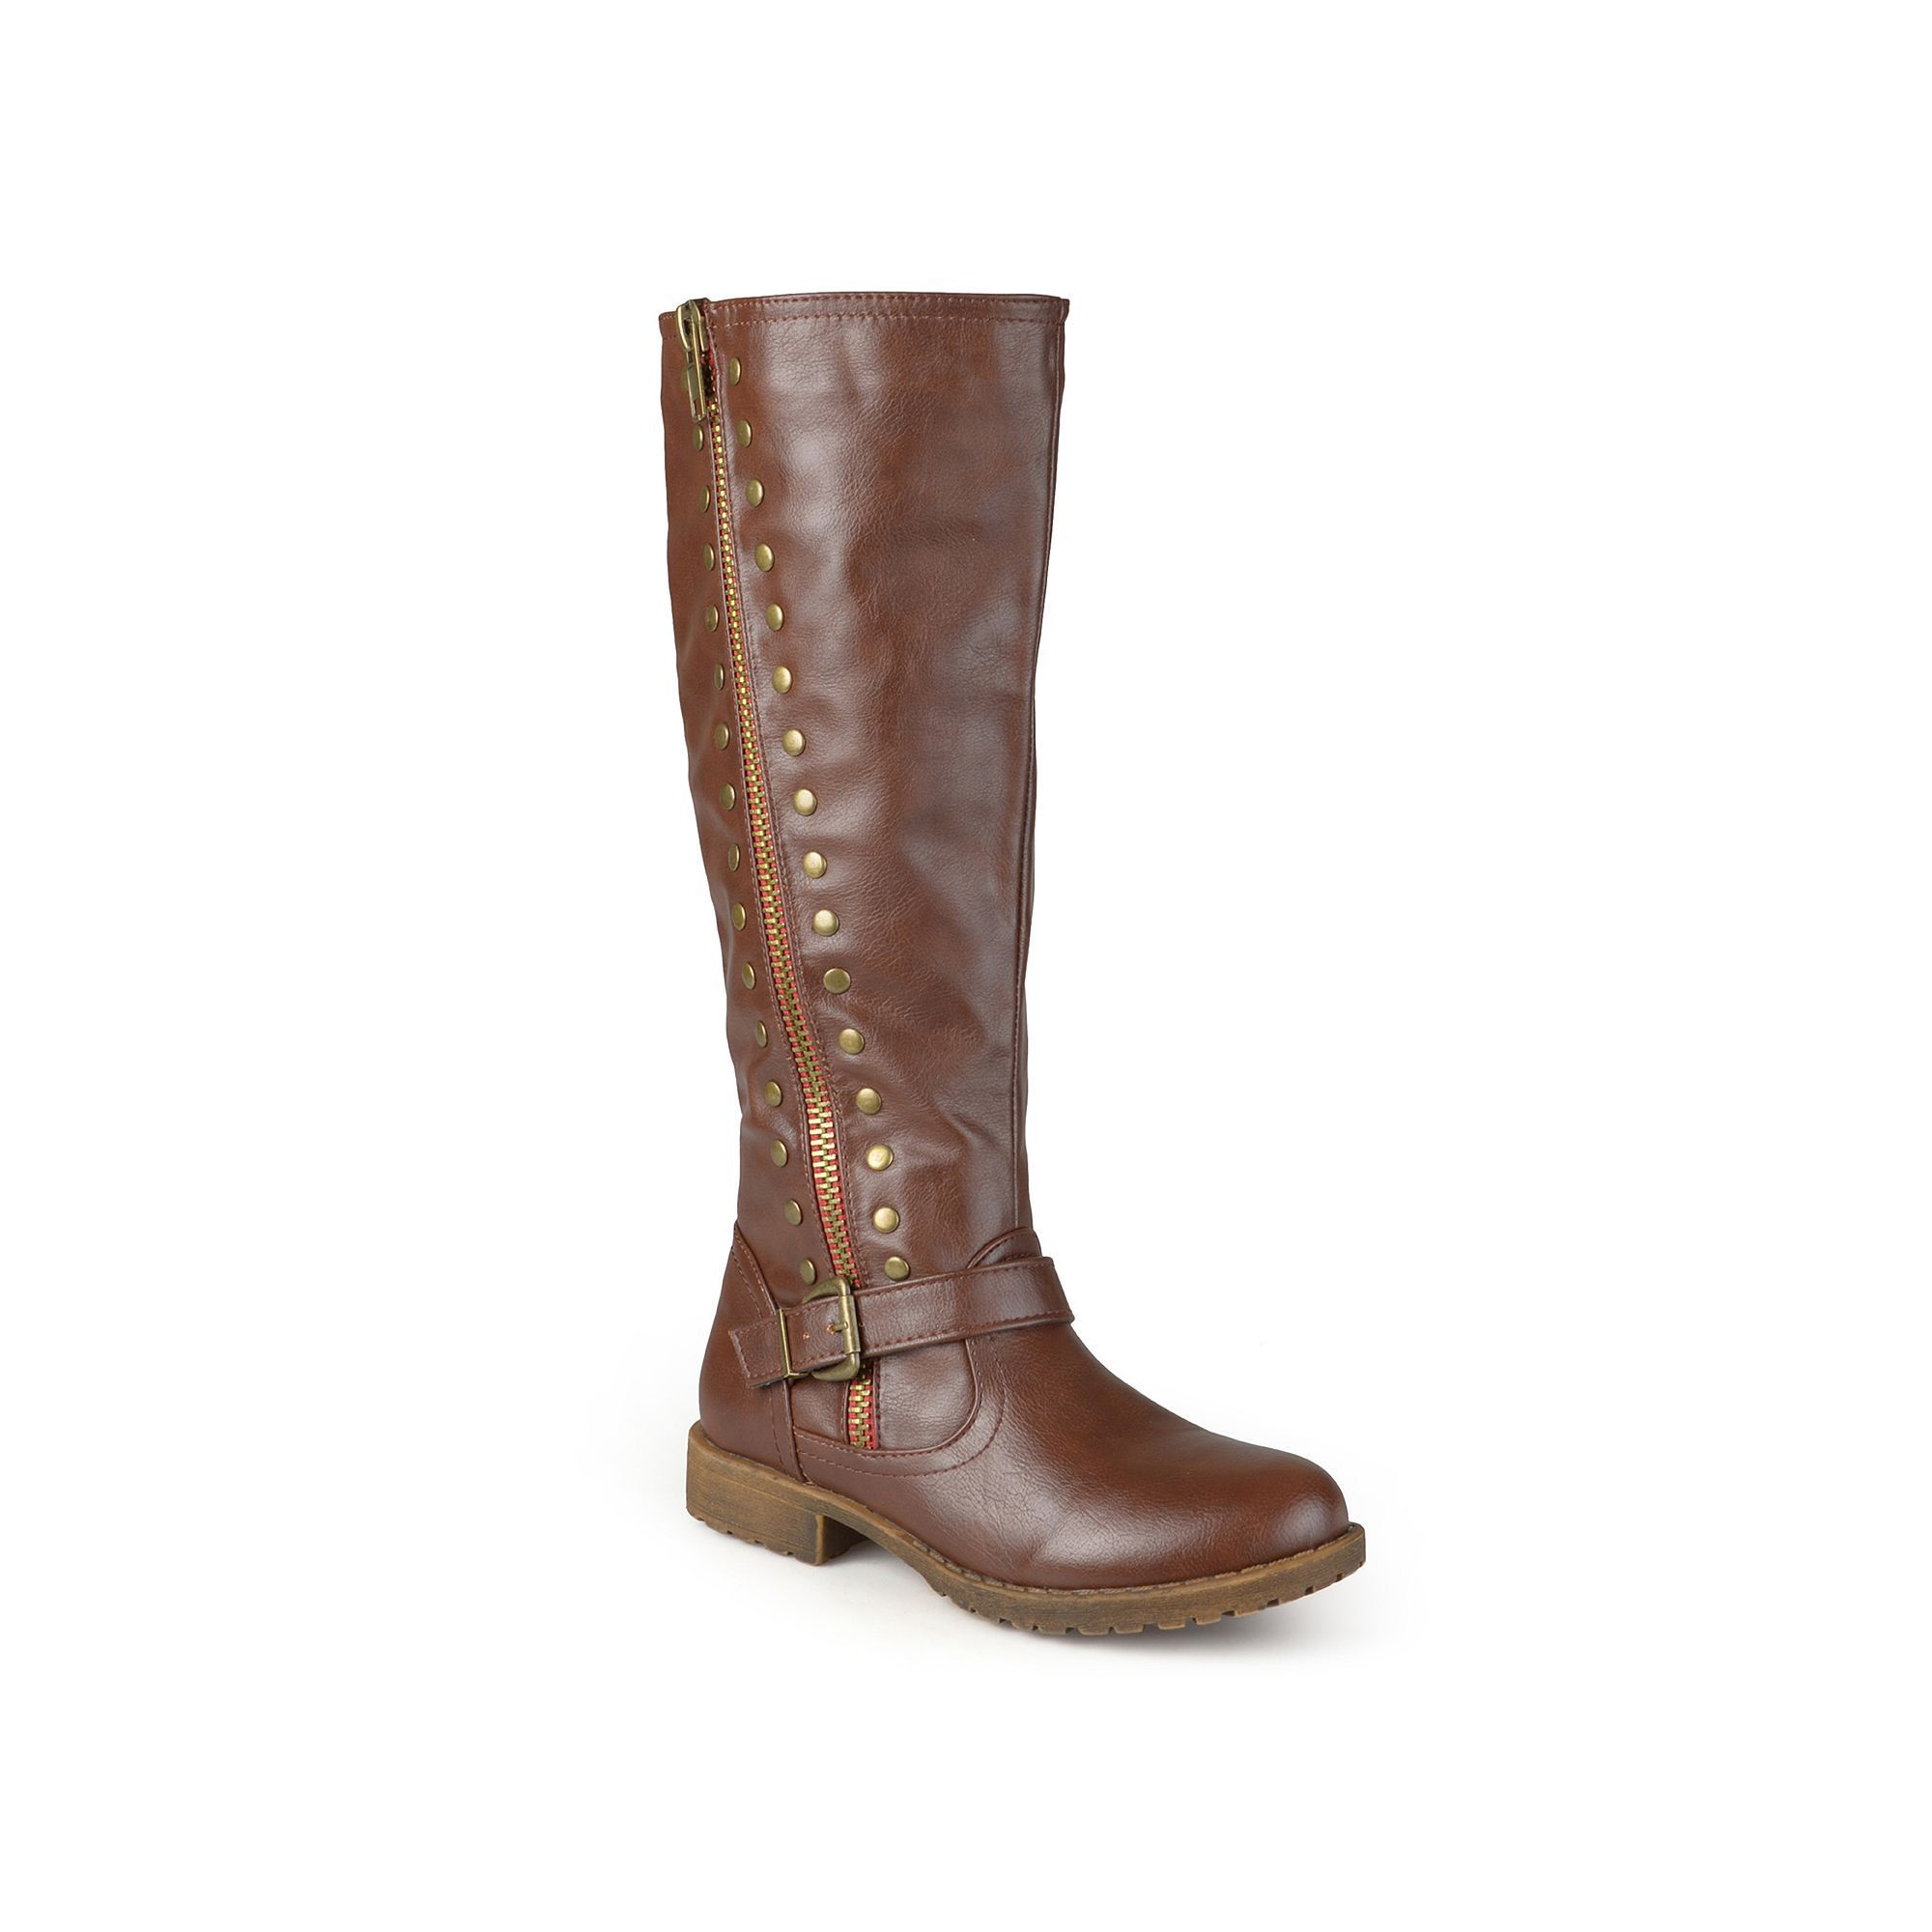 503a93df29a Journee Collection Women s Studded Knee-High Riding Boots. Wide Calf ...